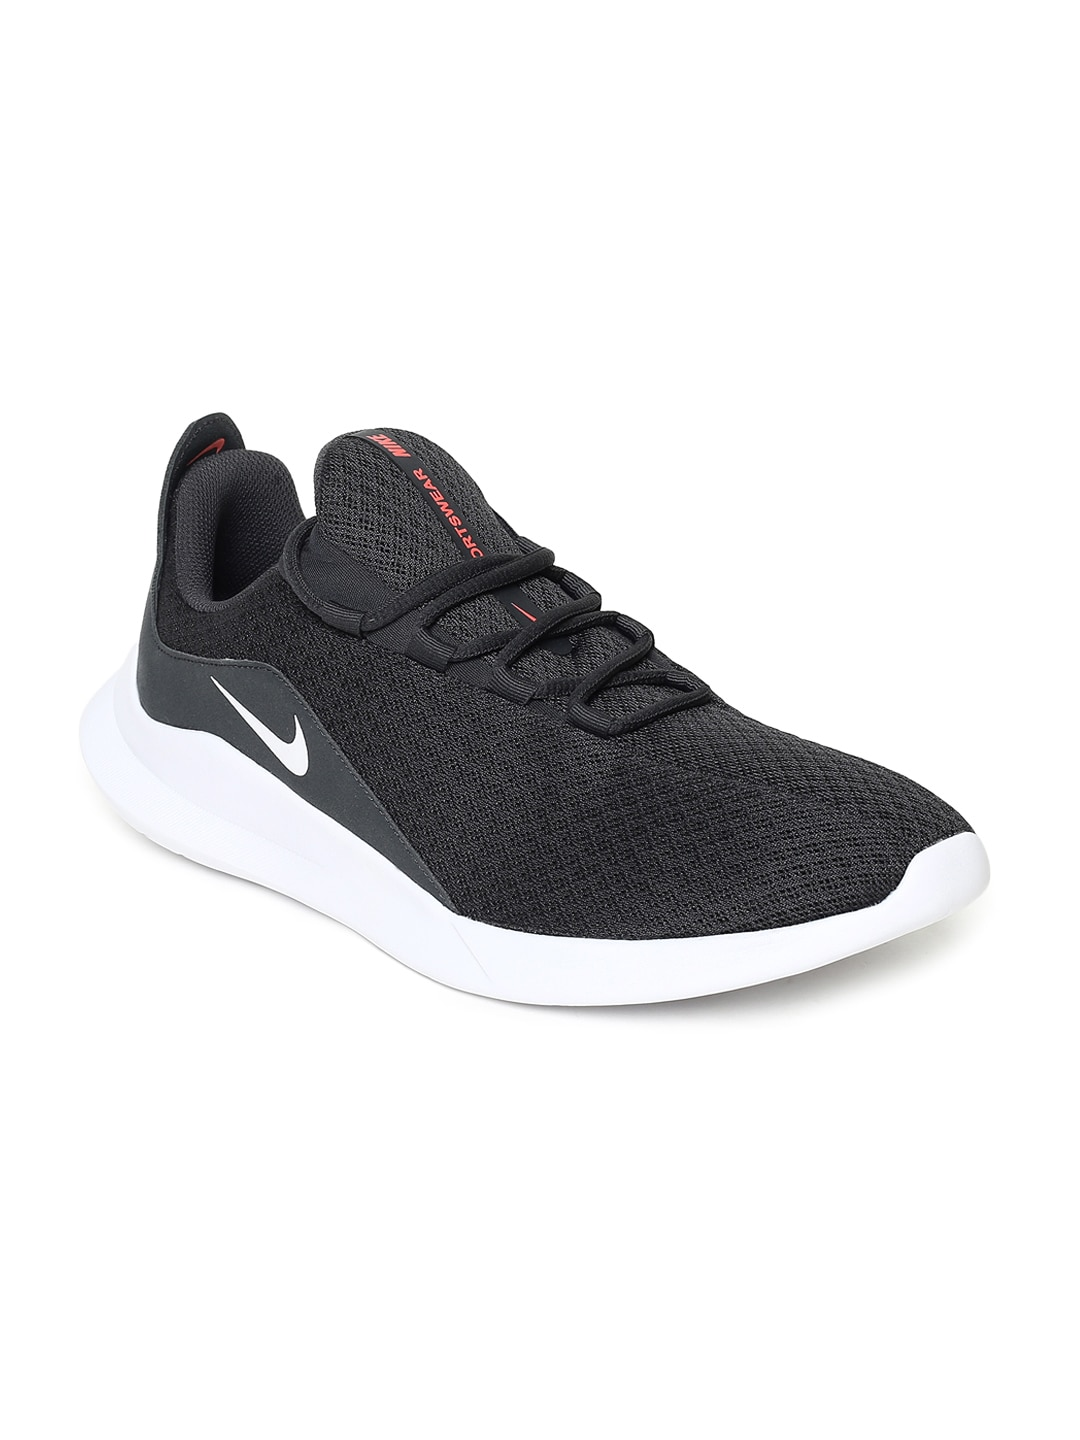 f2bb4efe1f8fc Nike Shoes - Buy Nike Shoes for Men